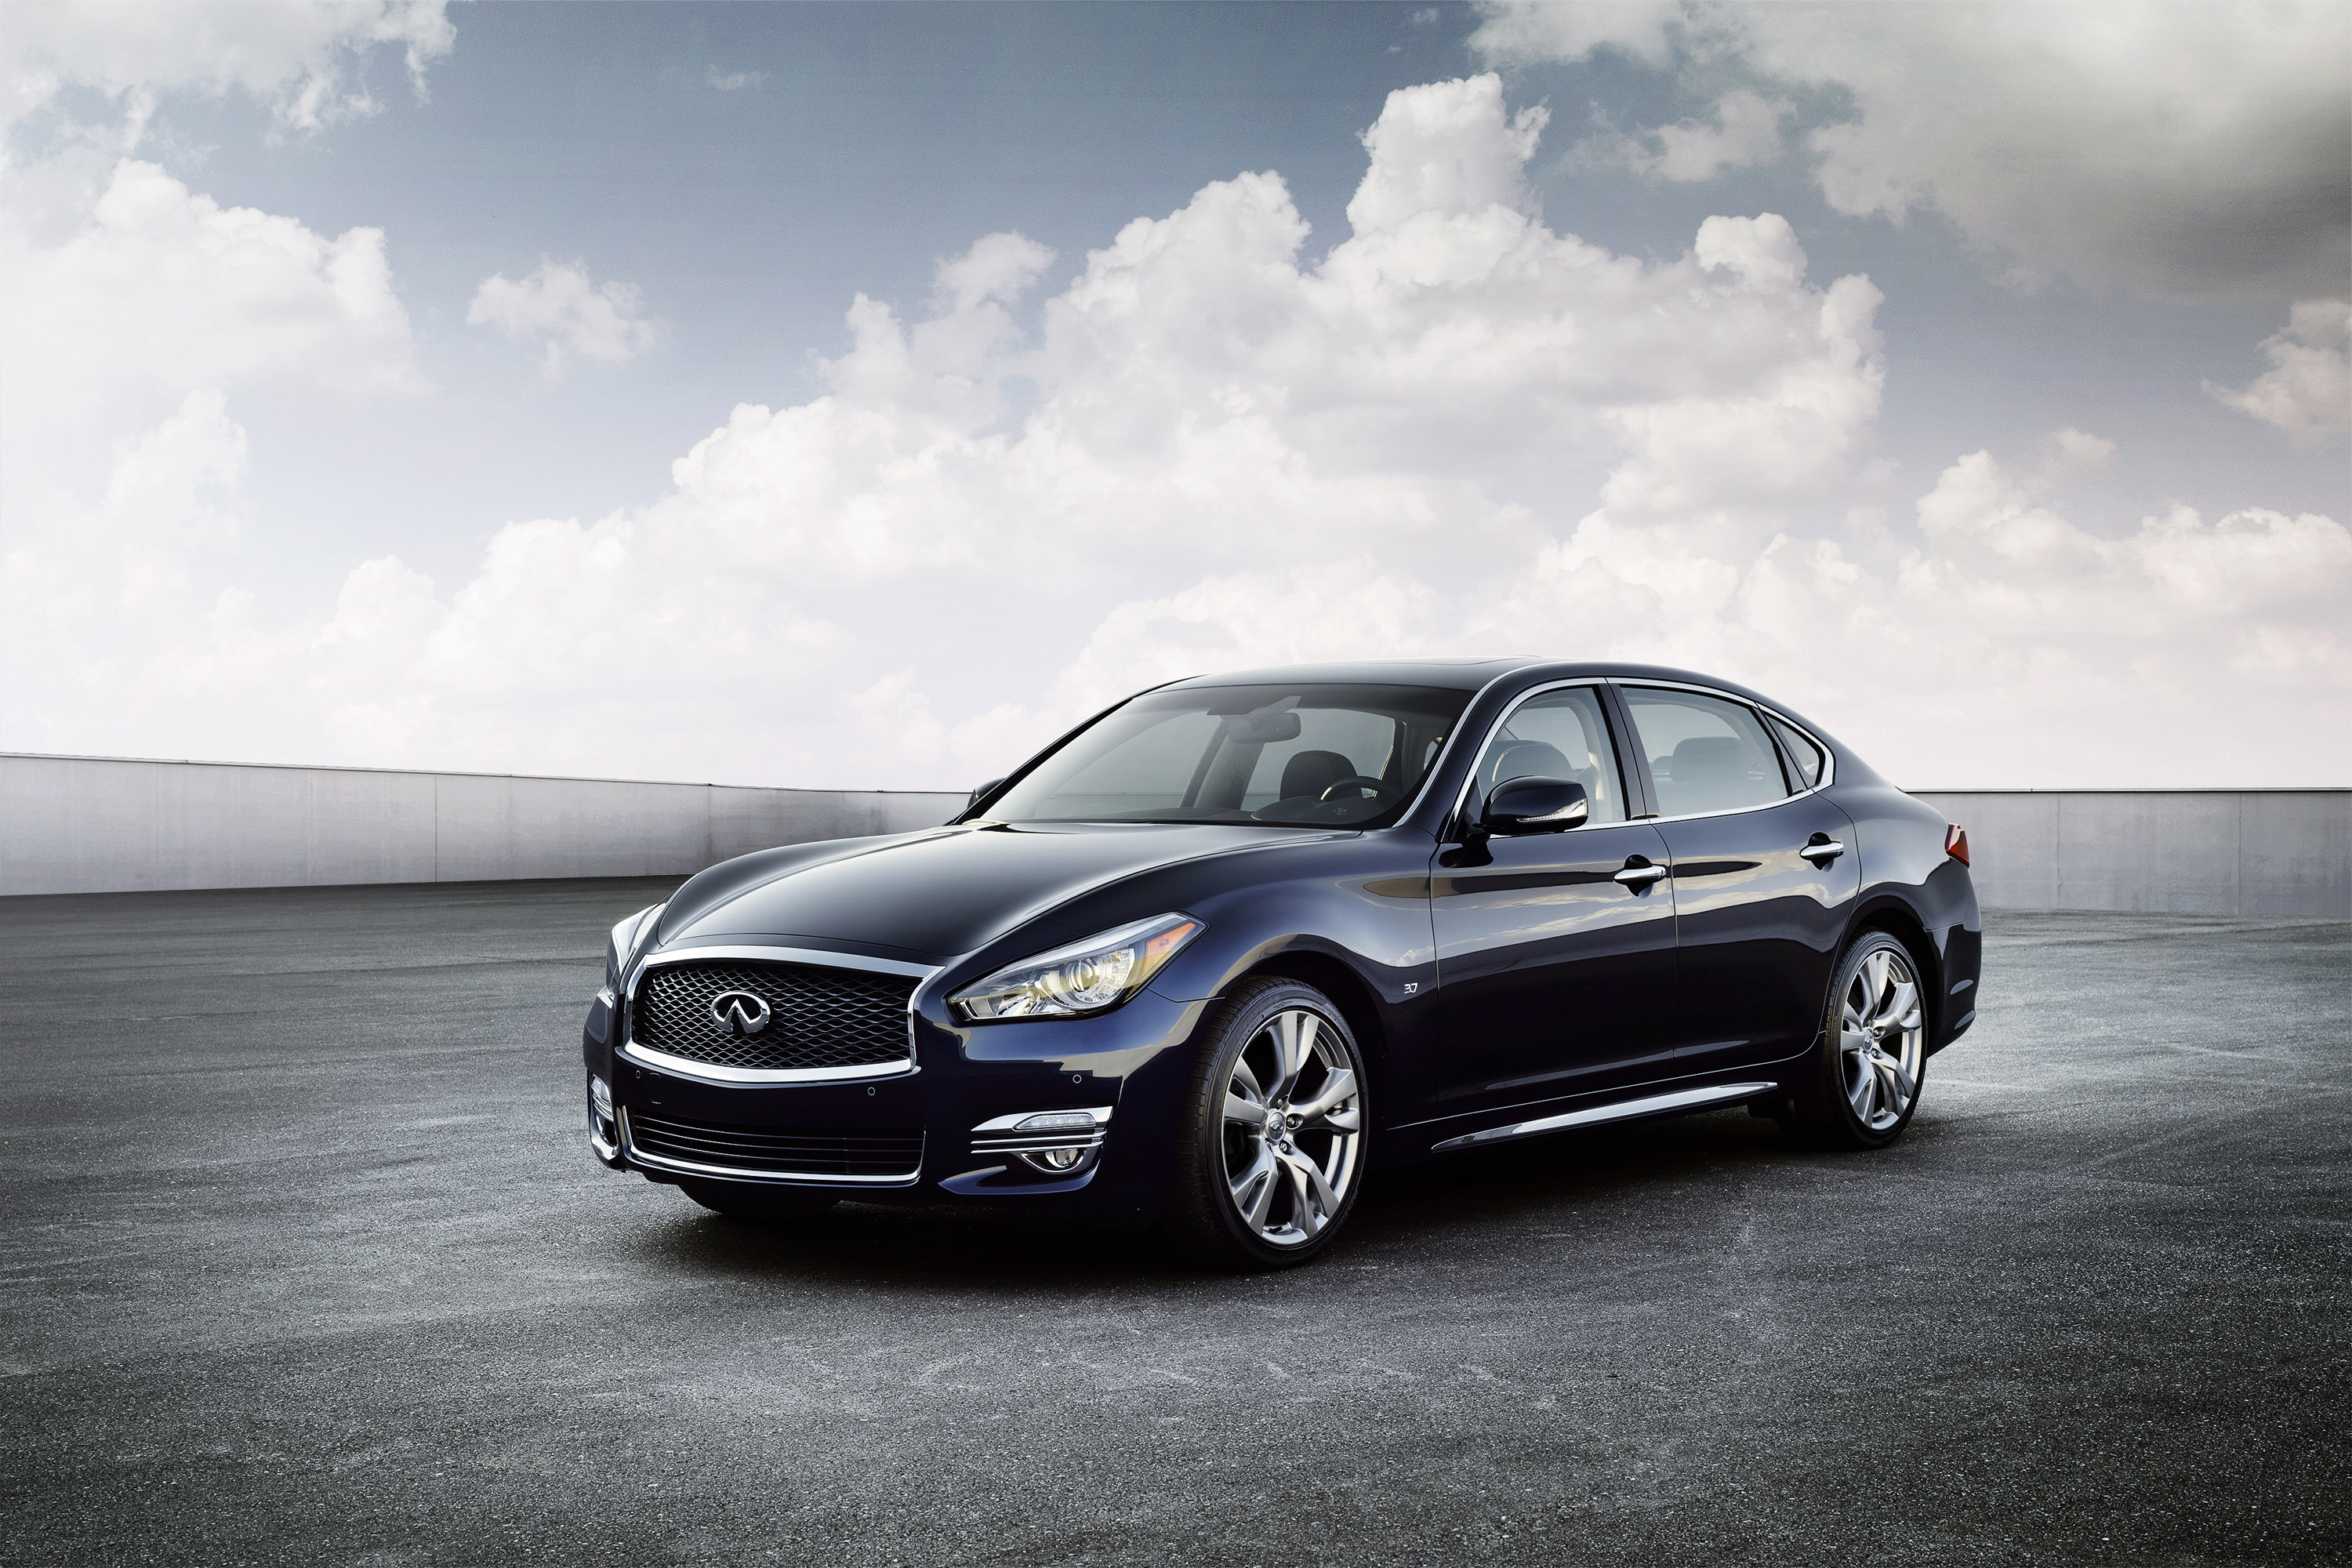 2015 infiniti q70 facelift. Black Bedroom Furniture Sets. Home Design Ideas